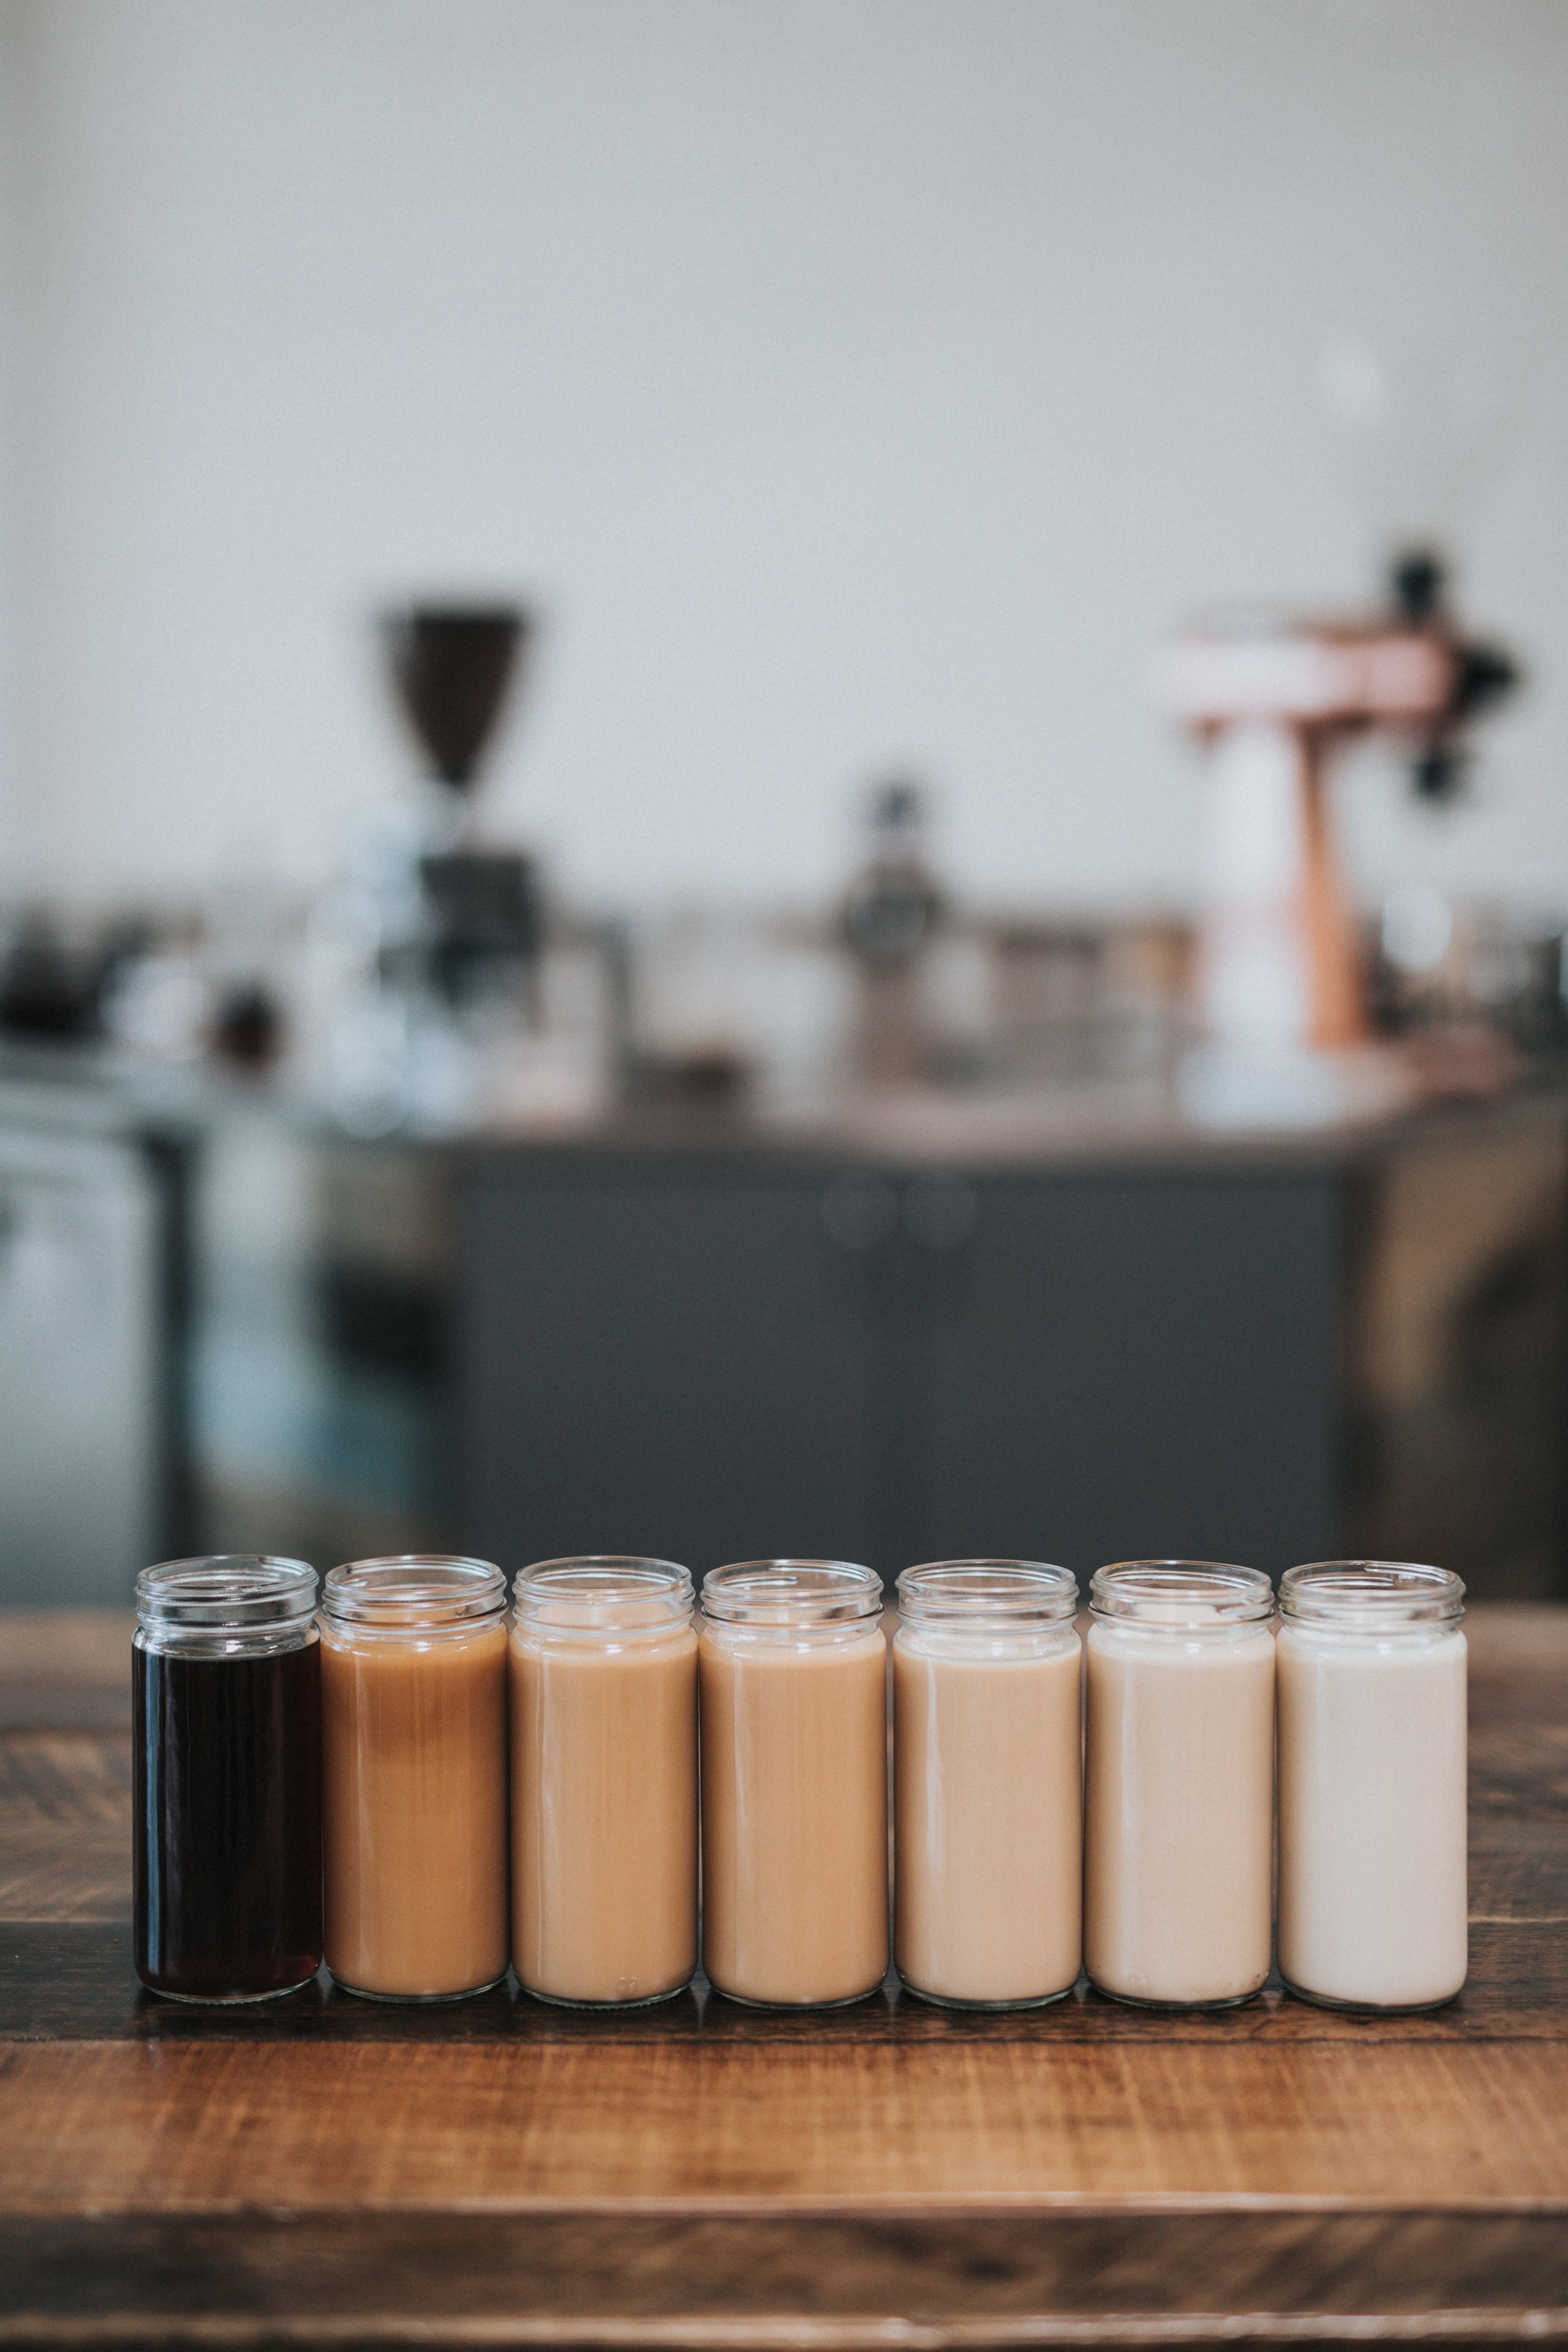 Scented candles in various shades of brown standing in a row on a wooden surface